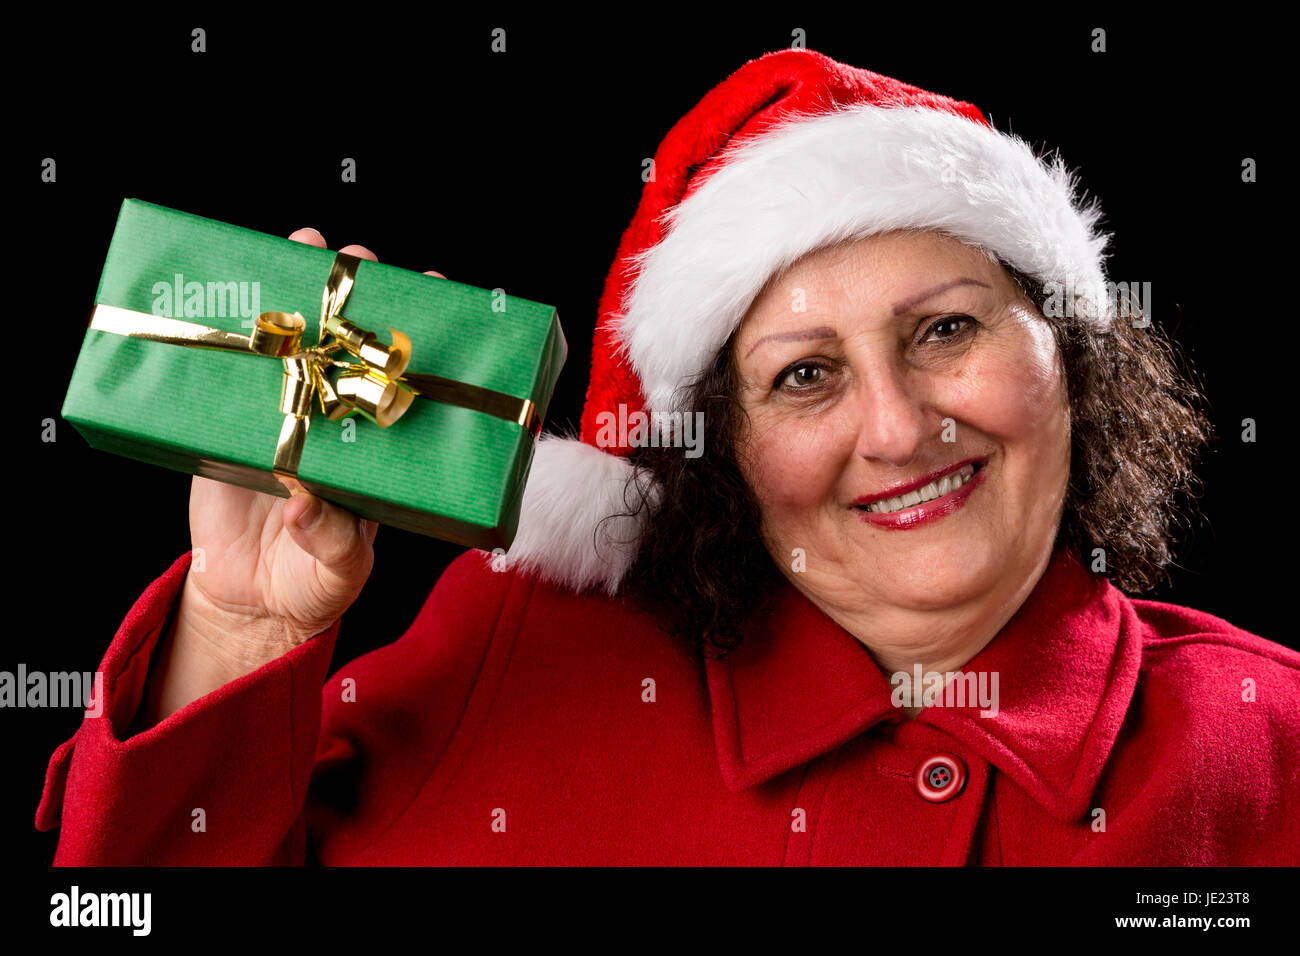 Middle aged woman wearing a Father Christmas hat and a red coat. She is holding up a green Xmas gift with her right - Stock Image